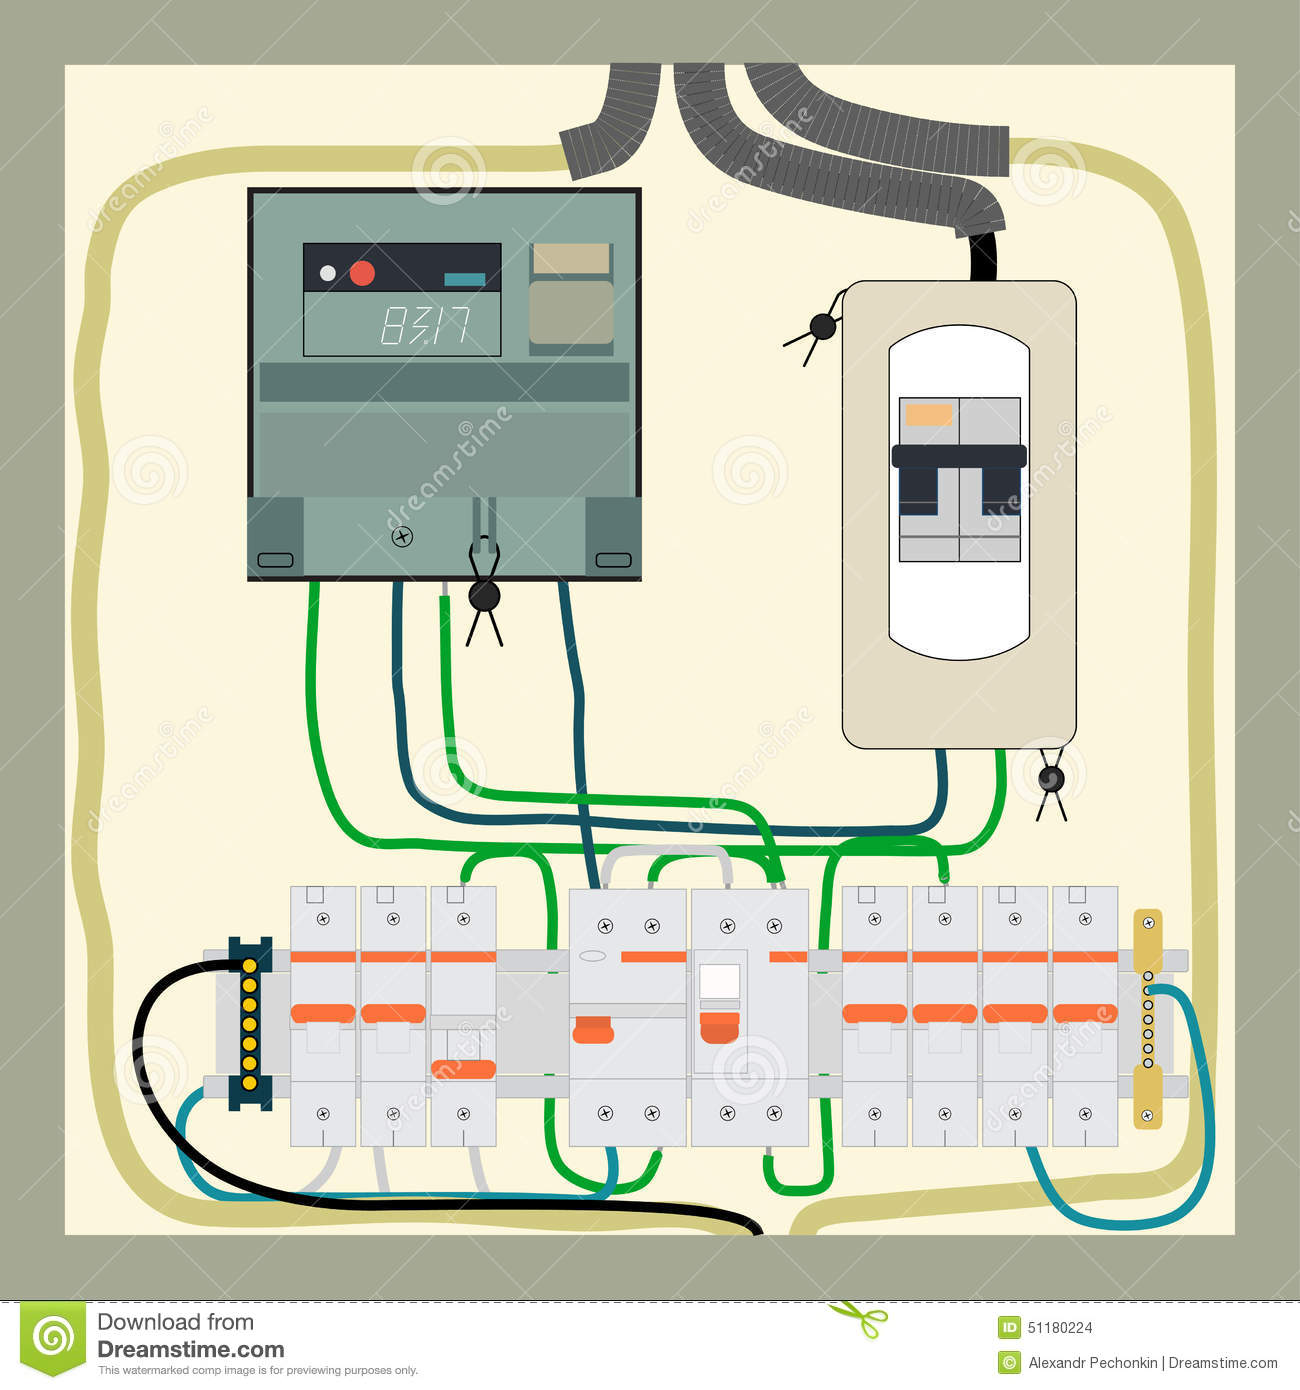 Electrical panel clipart.